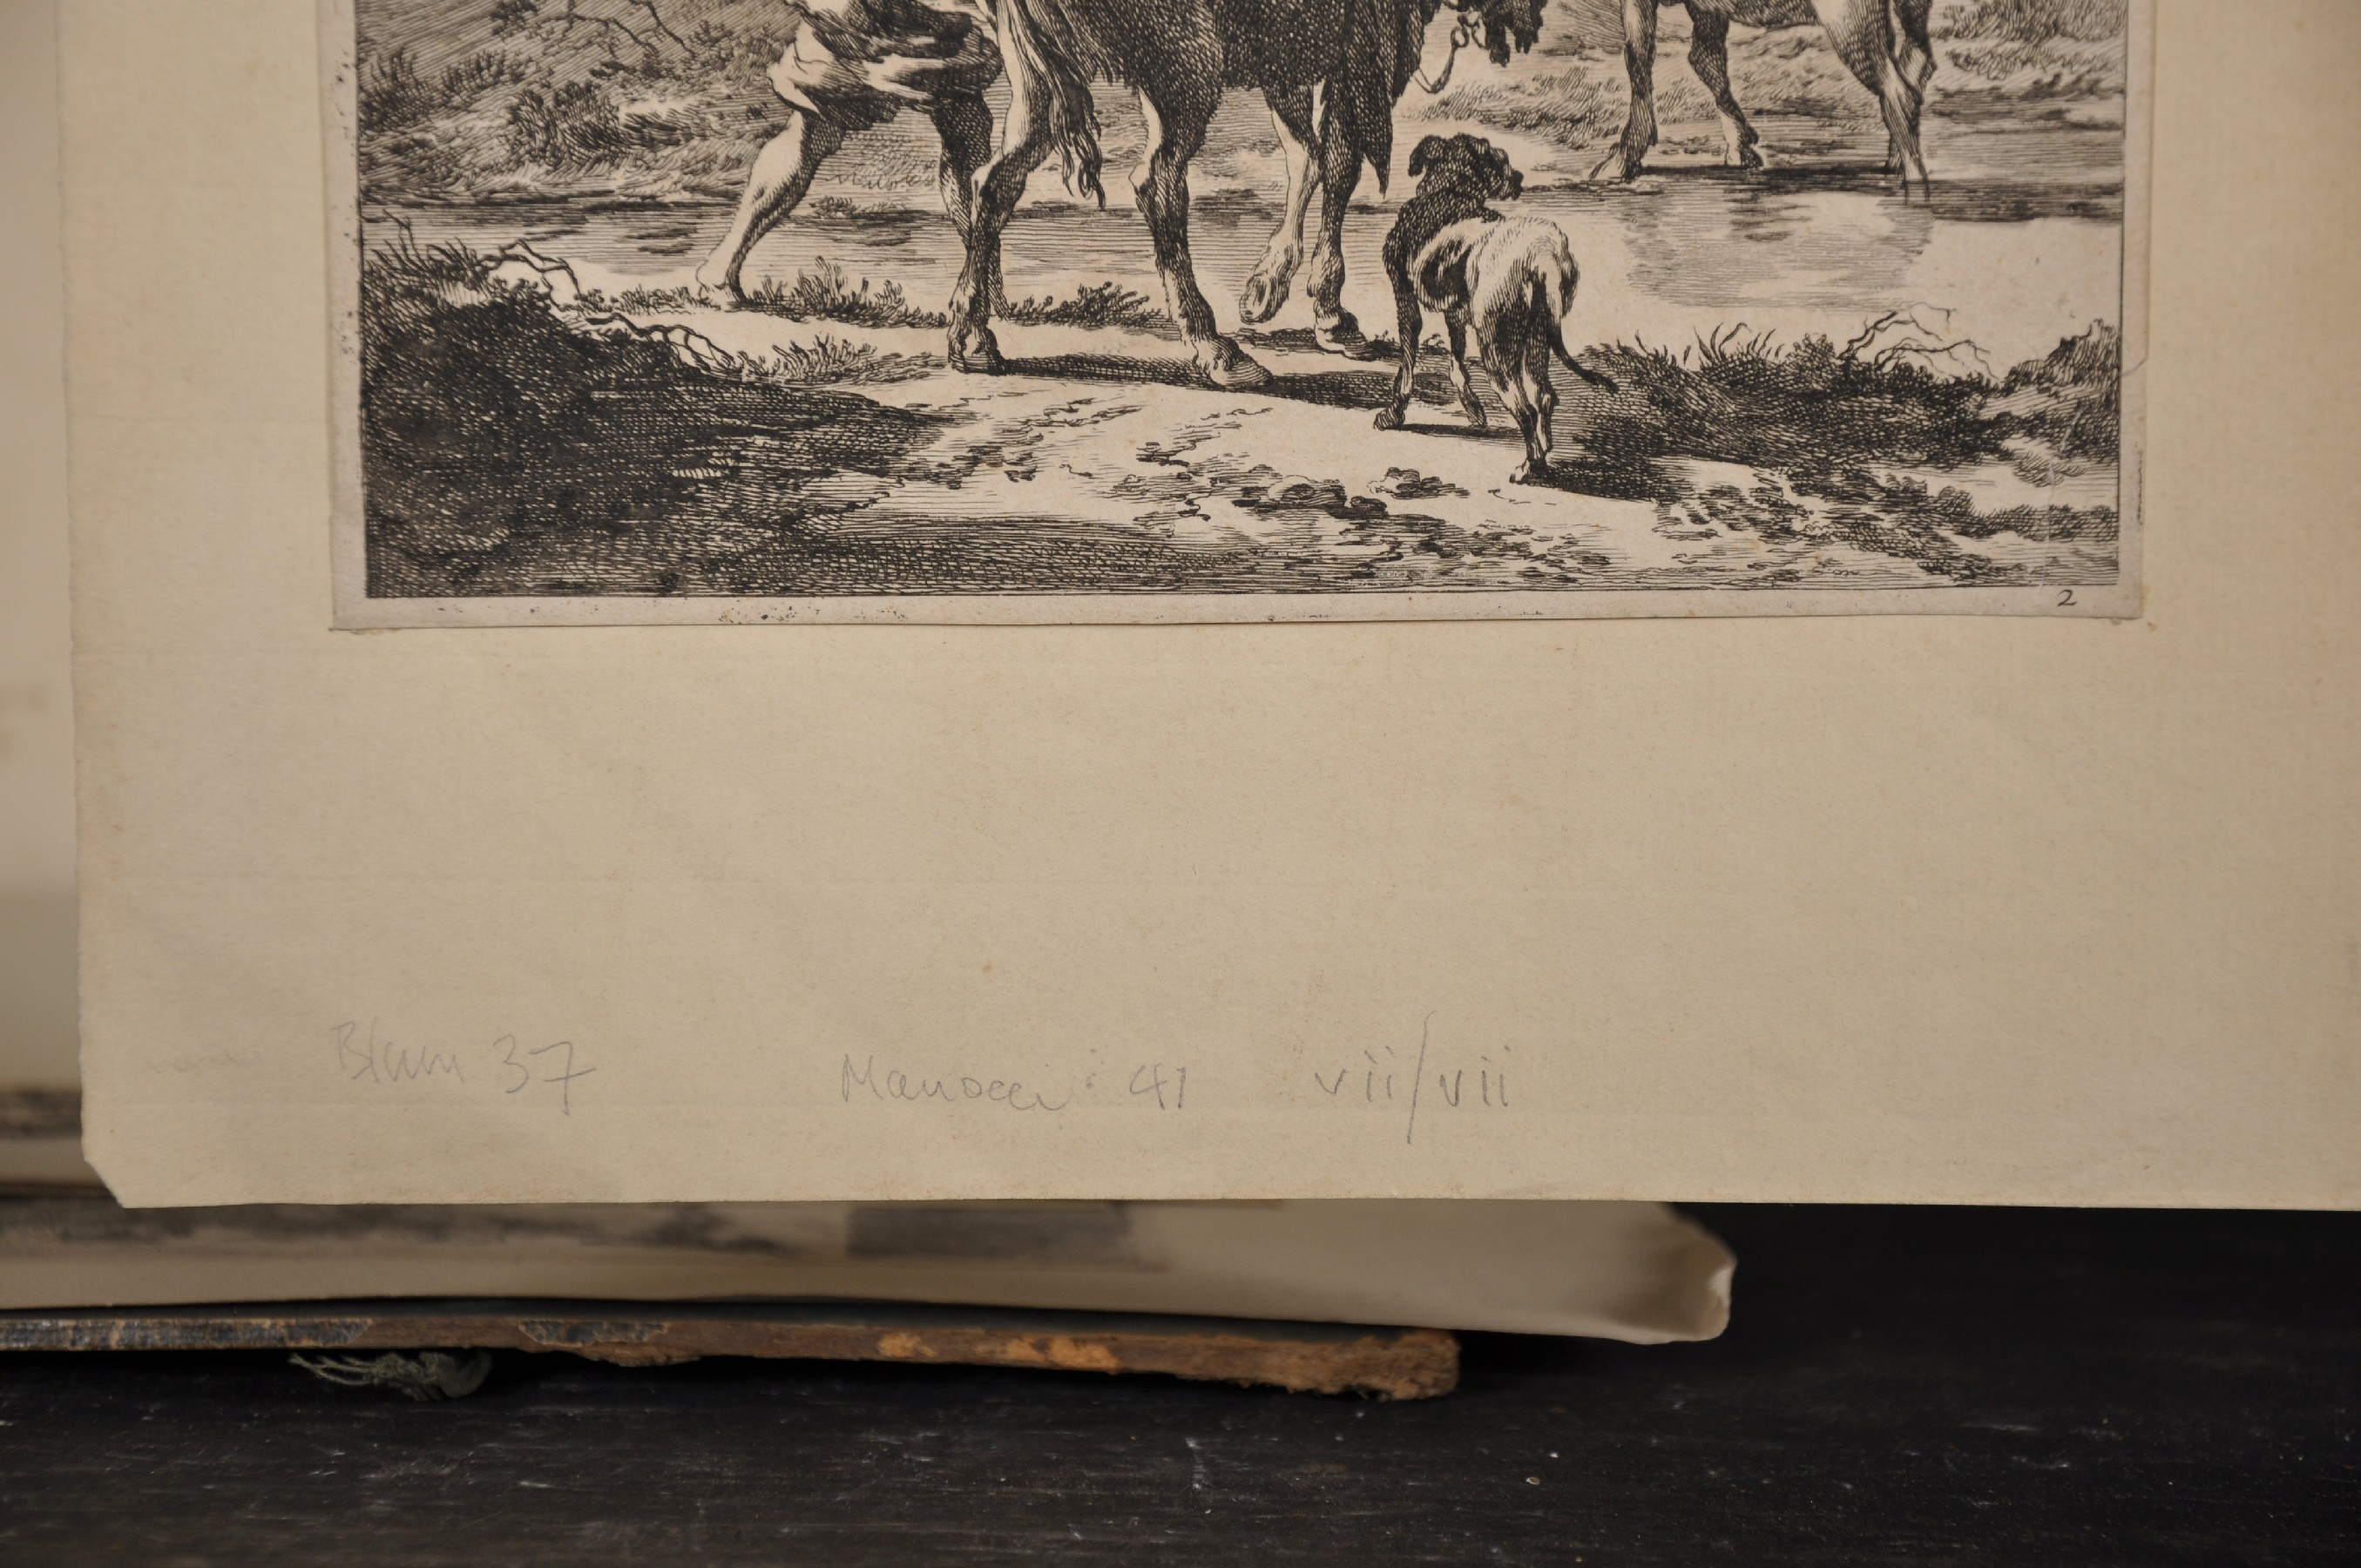 """After Nicholas Berghem (1620-1683) Dutch. Figures on a Path, Engraving, Unframed, 10.25"""" x 8"""", - Image 3 of 5"""